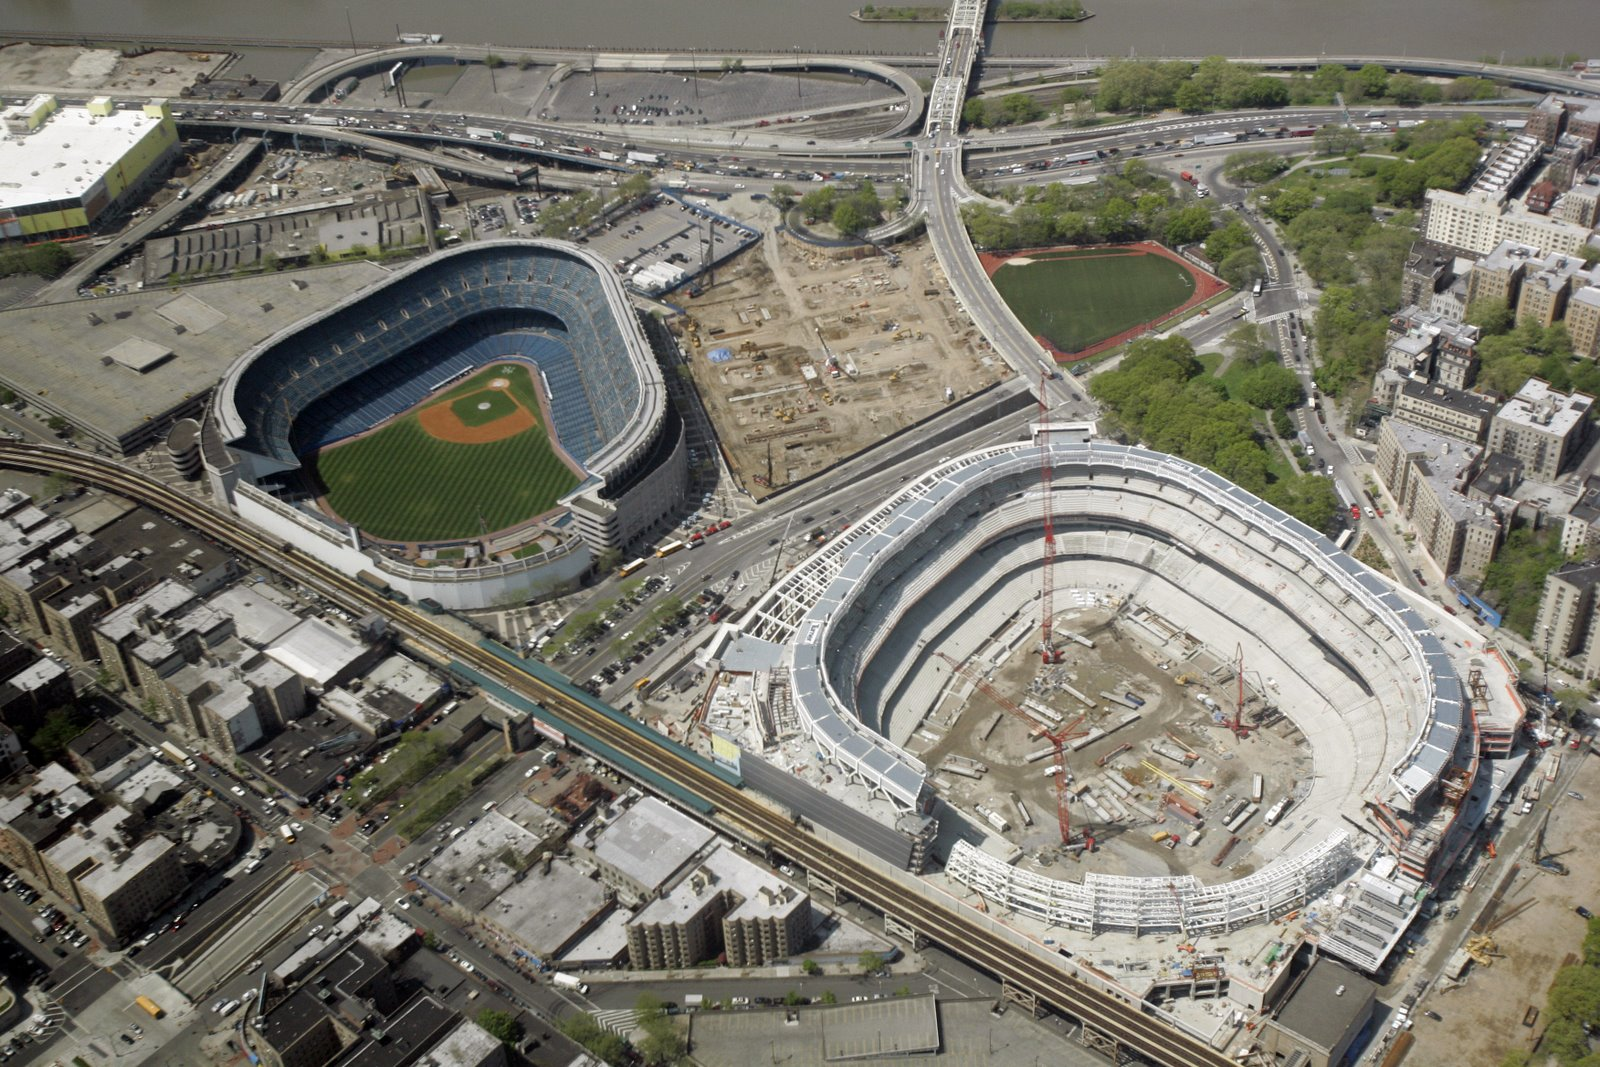 Old Yankee Stadium on the left and the construction of the New Yankee Stadium on the right.